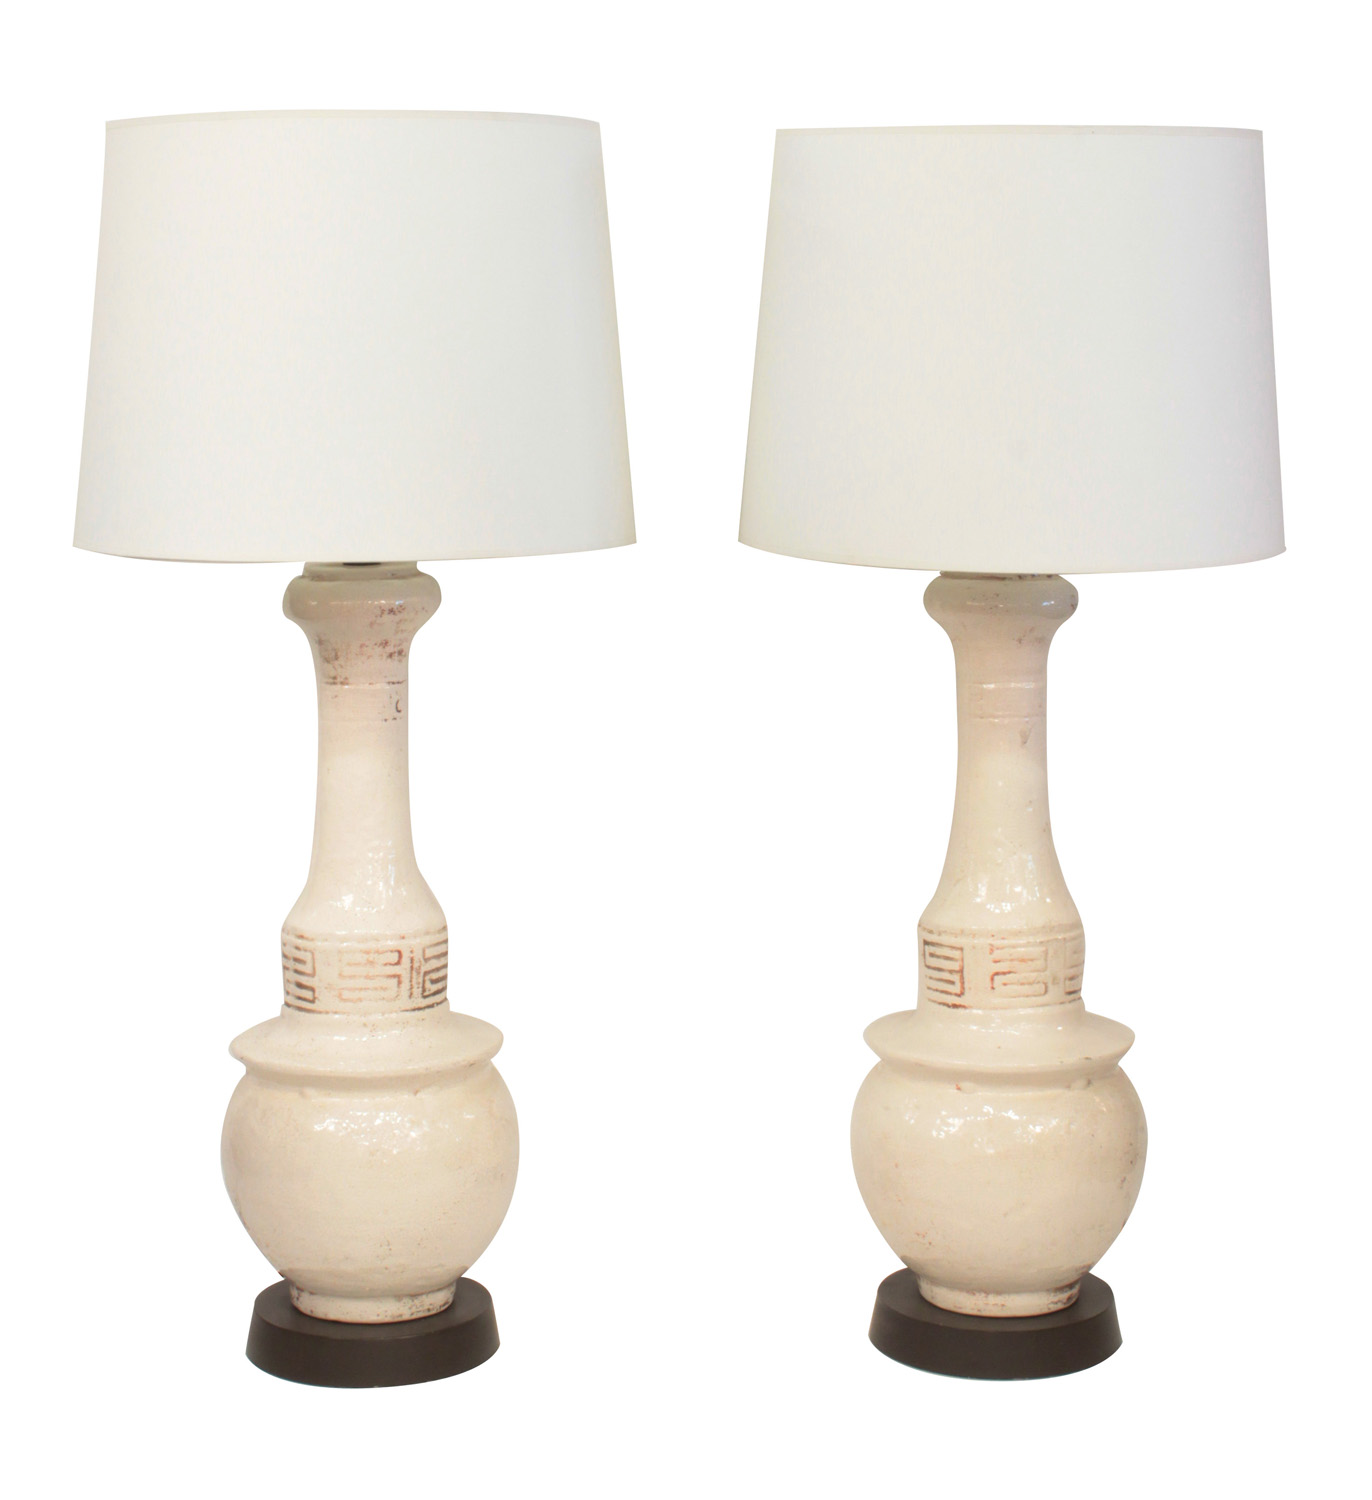 50s 45 ceramic white glaze key design tablelamps278 hires.jpg